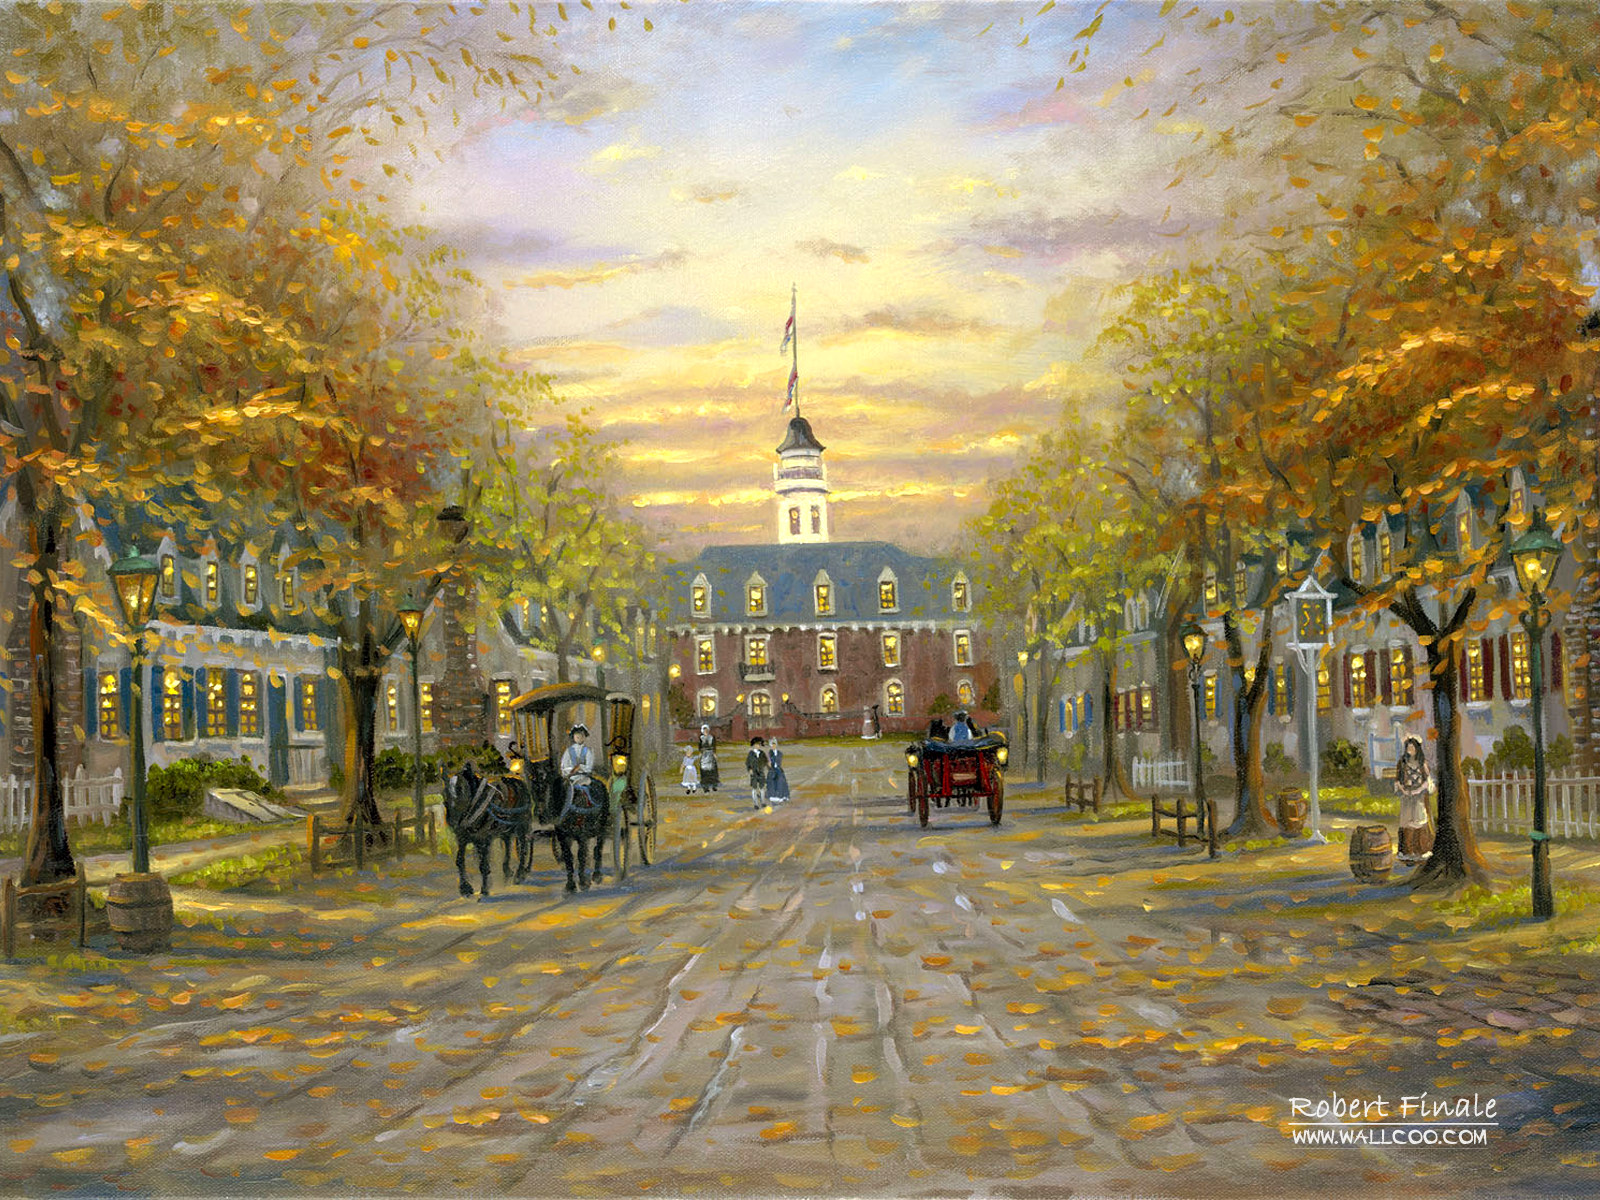 Romantic Painting the town 4976